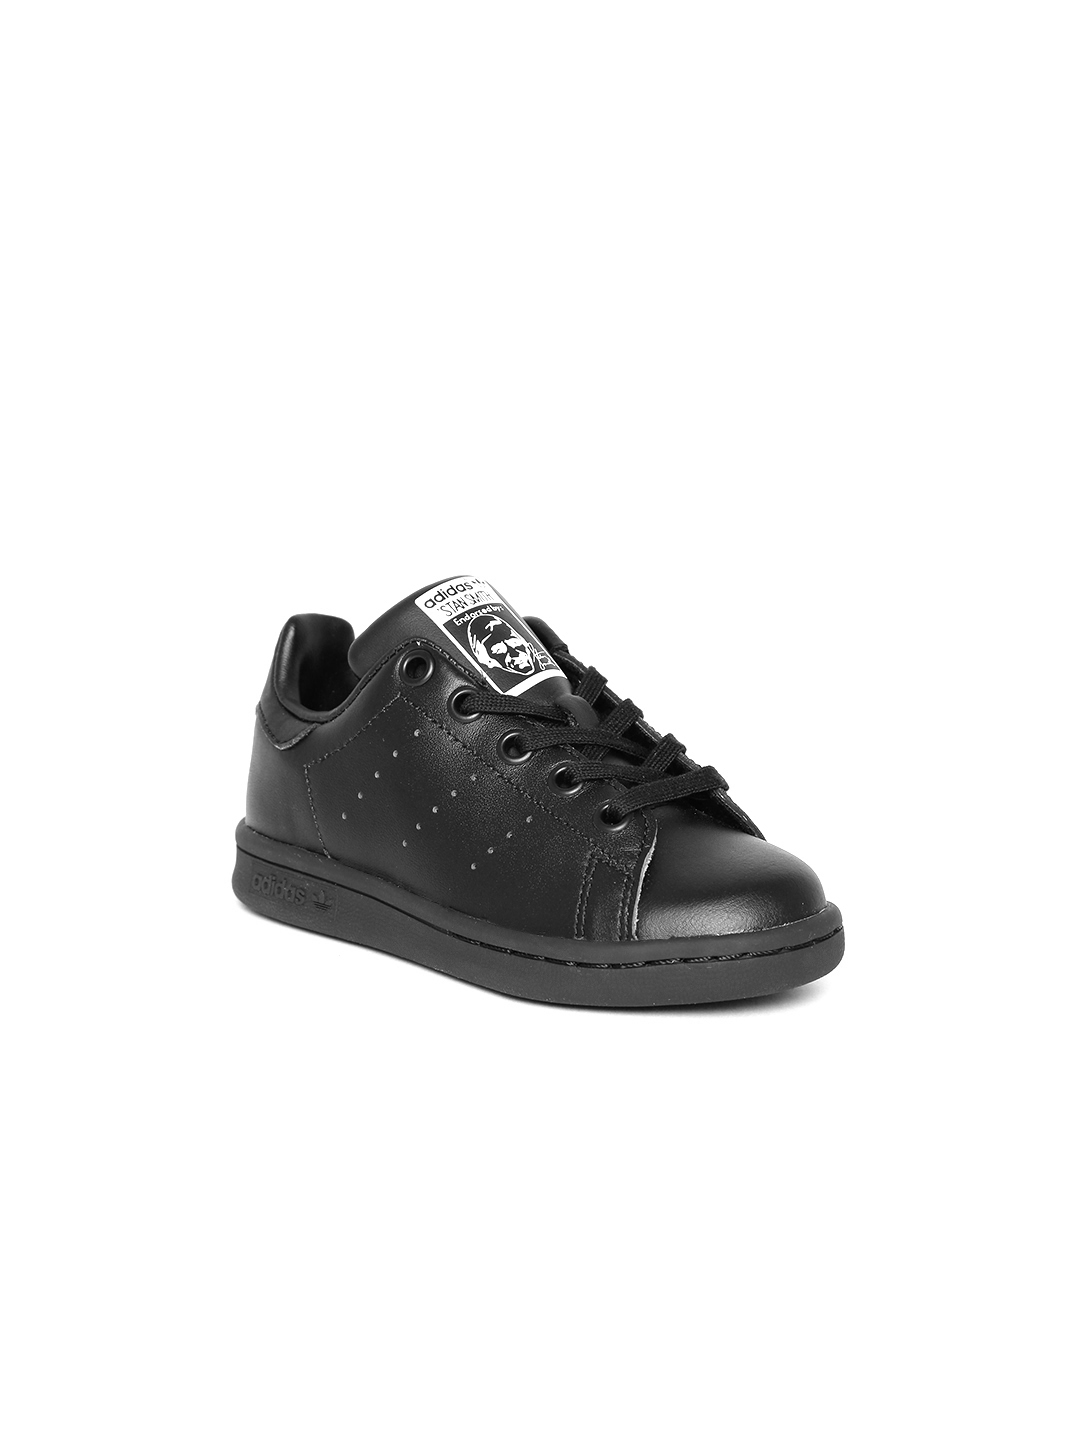 Buy Adidas Originals Kids Black STAN SMITH Sneakers - Casual Shoes ... 789b3fe041